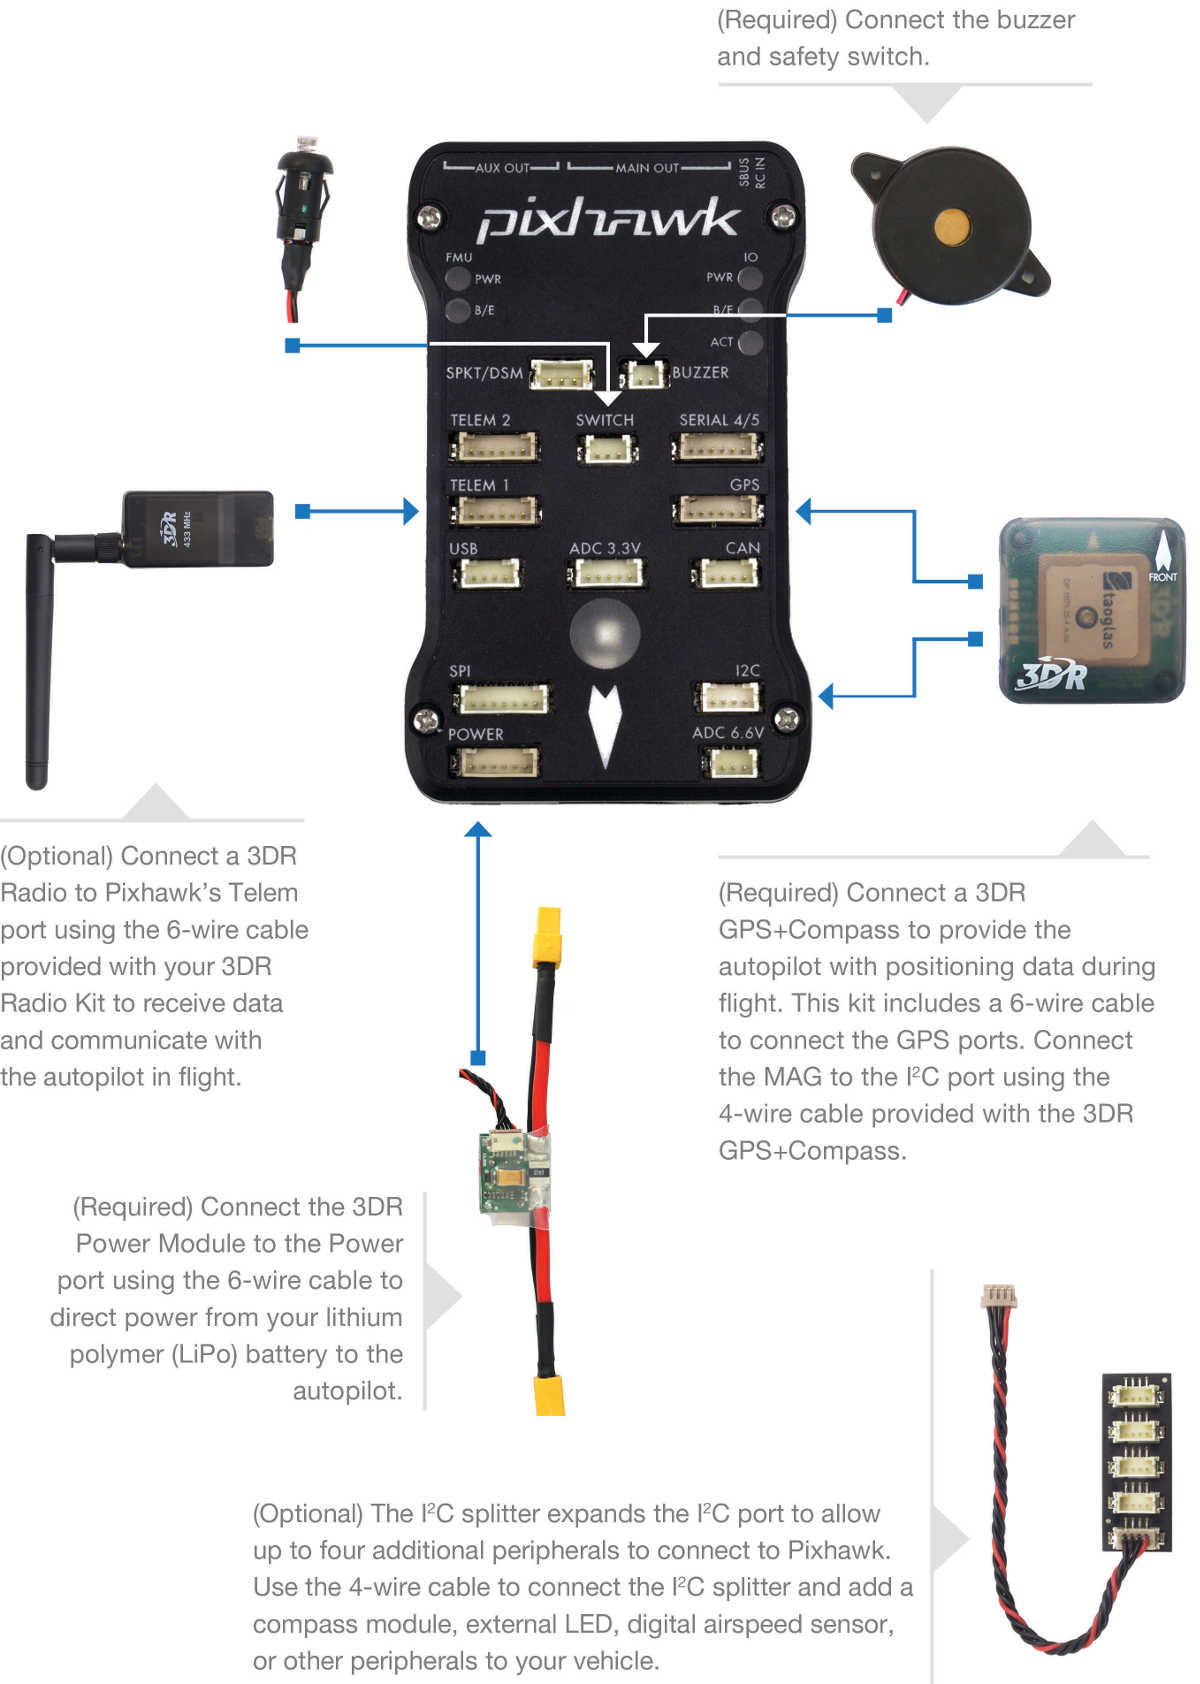 Pixhawk Wiring Quick Start — Copter doentation on 4-way switch diagram, 55 chevy headlight switch diagram, switch connection diagram, 4 wire pull, 4 wire motor diagram, 2-way switch diagram, 4 wire fan diagram, 4-way circuit diagram, 3-way switch diagram, 3 speed fan switch diagram,